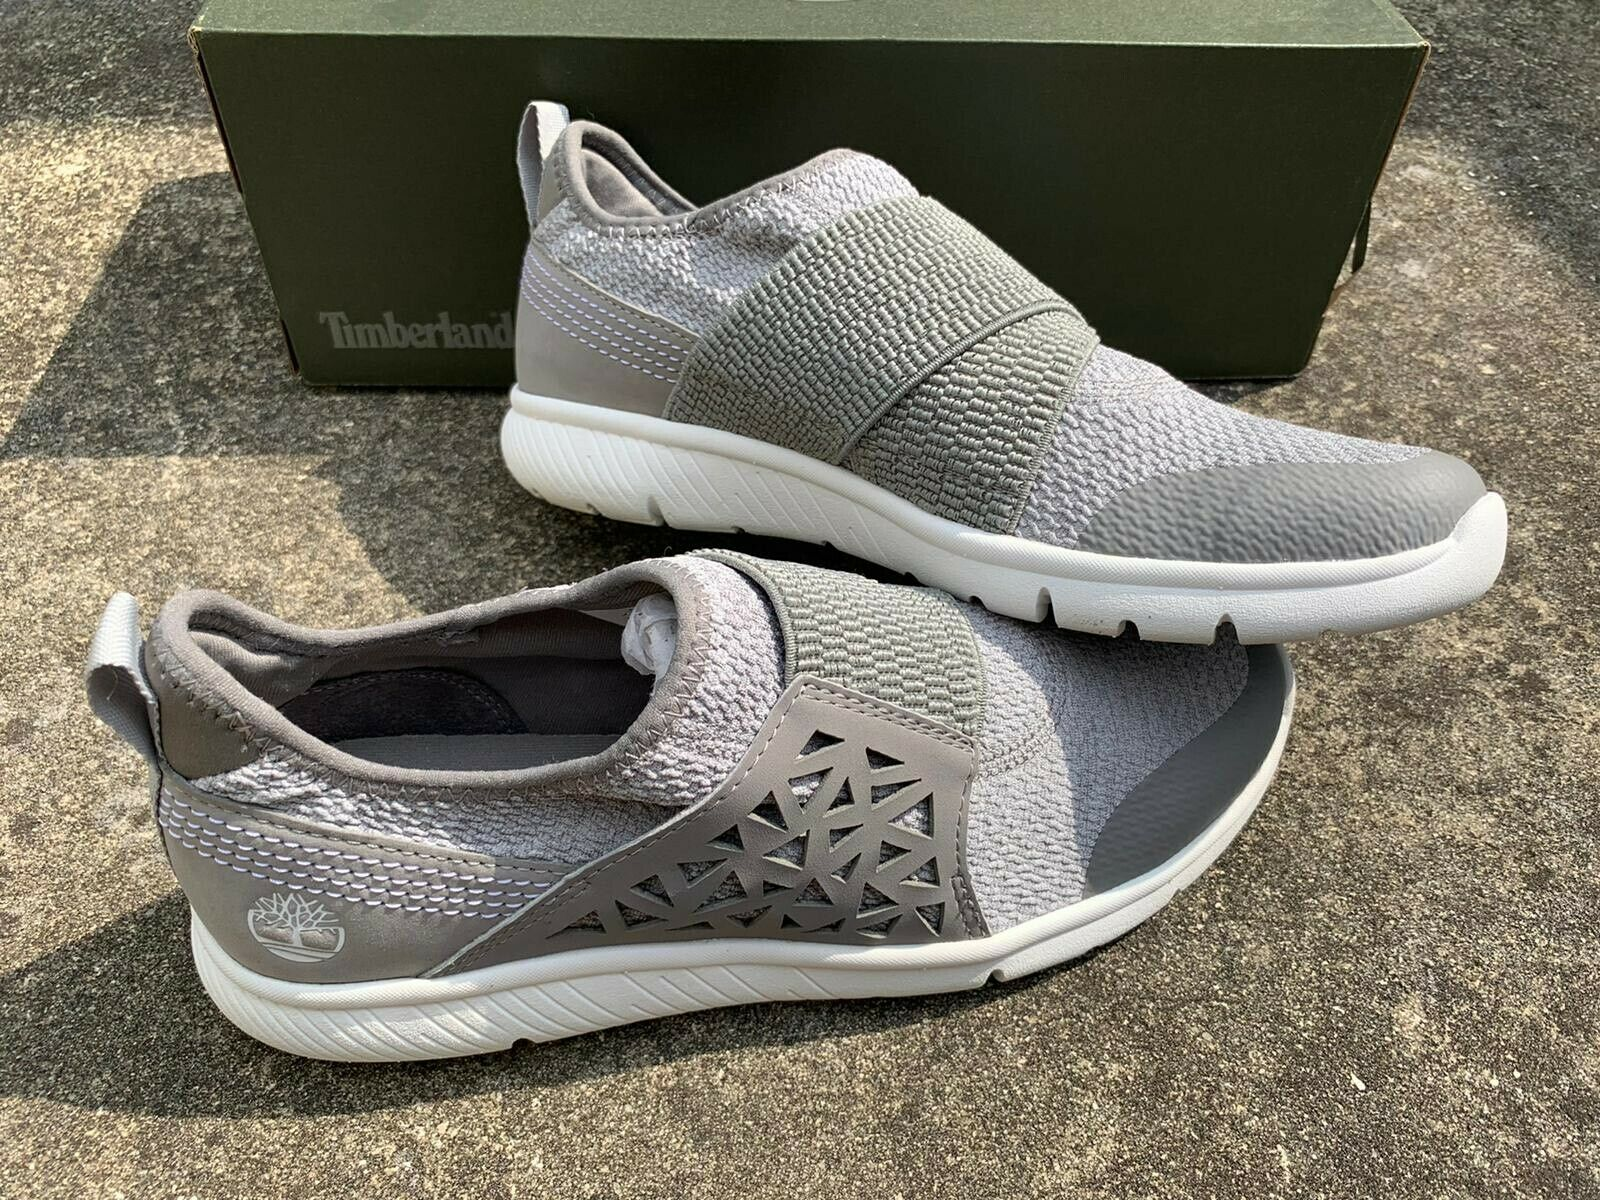 TIMBERLAND timberland womens grey running low top walking fitness low top shoes boltero a1r32